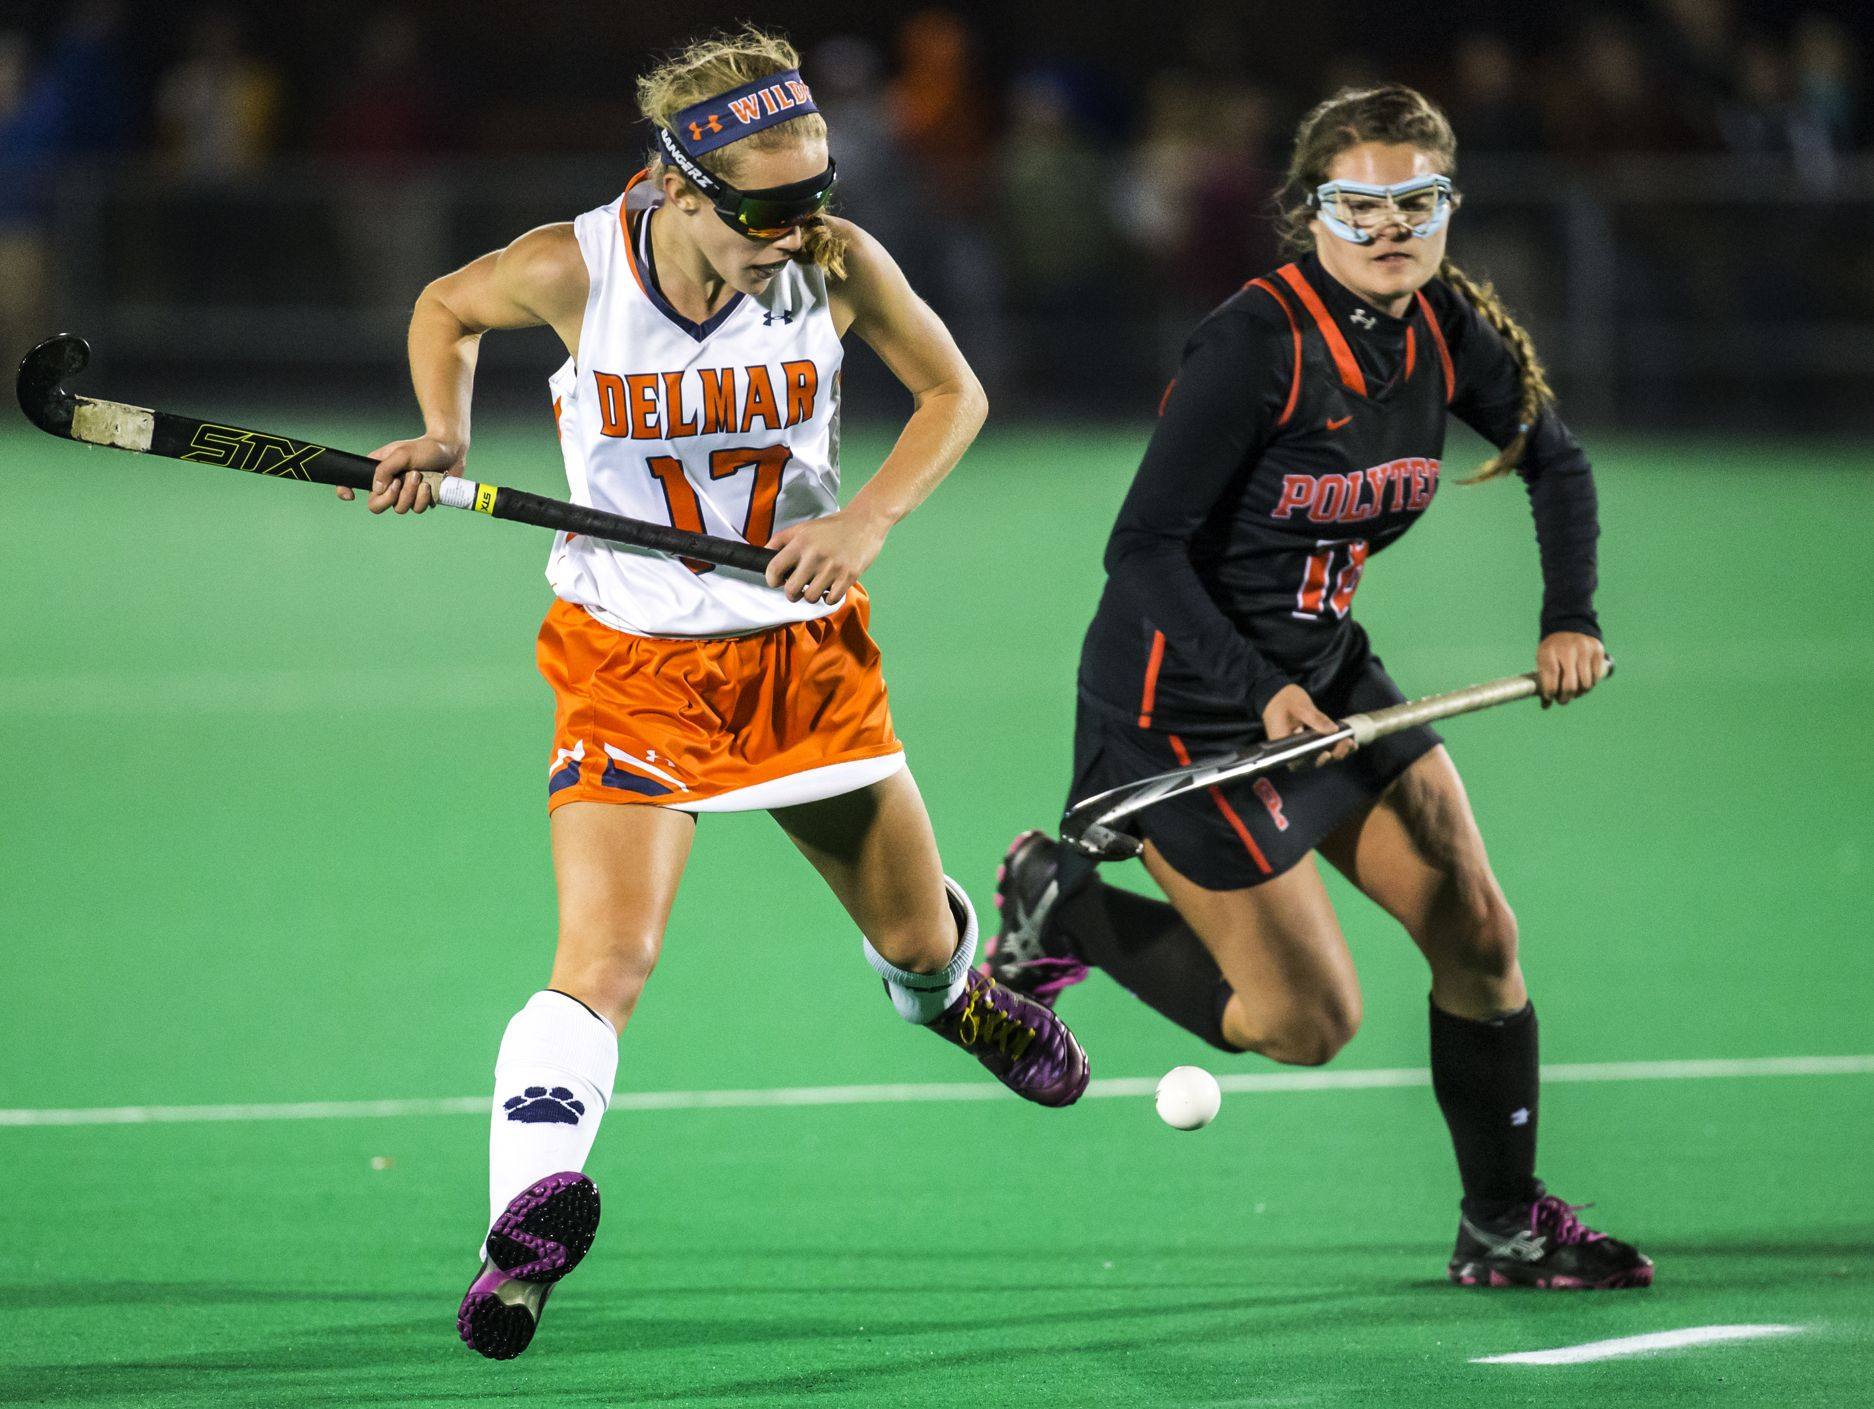 Delmar's Ashlyn Carr (left) and Polytech's Meadow Watkinson (right) chase down the ball in the second half of Delmar's 2-0 win over Polytech in their DIAA state tournament semi-final game at the University of Delaware in Newark on Tuesday night.